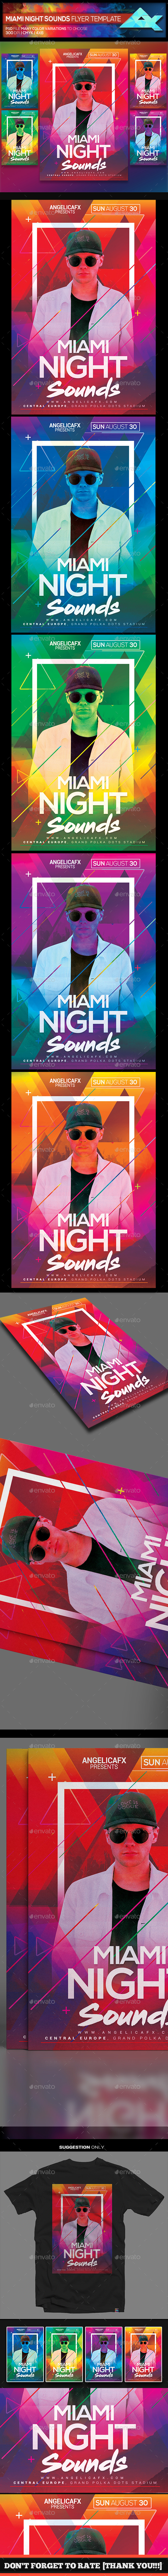 Miami Night Sounds Flyer Template